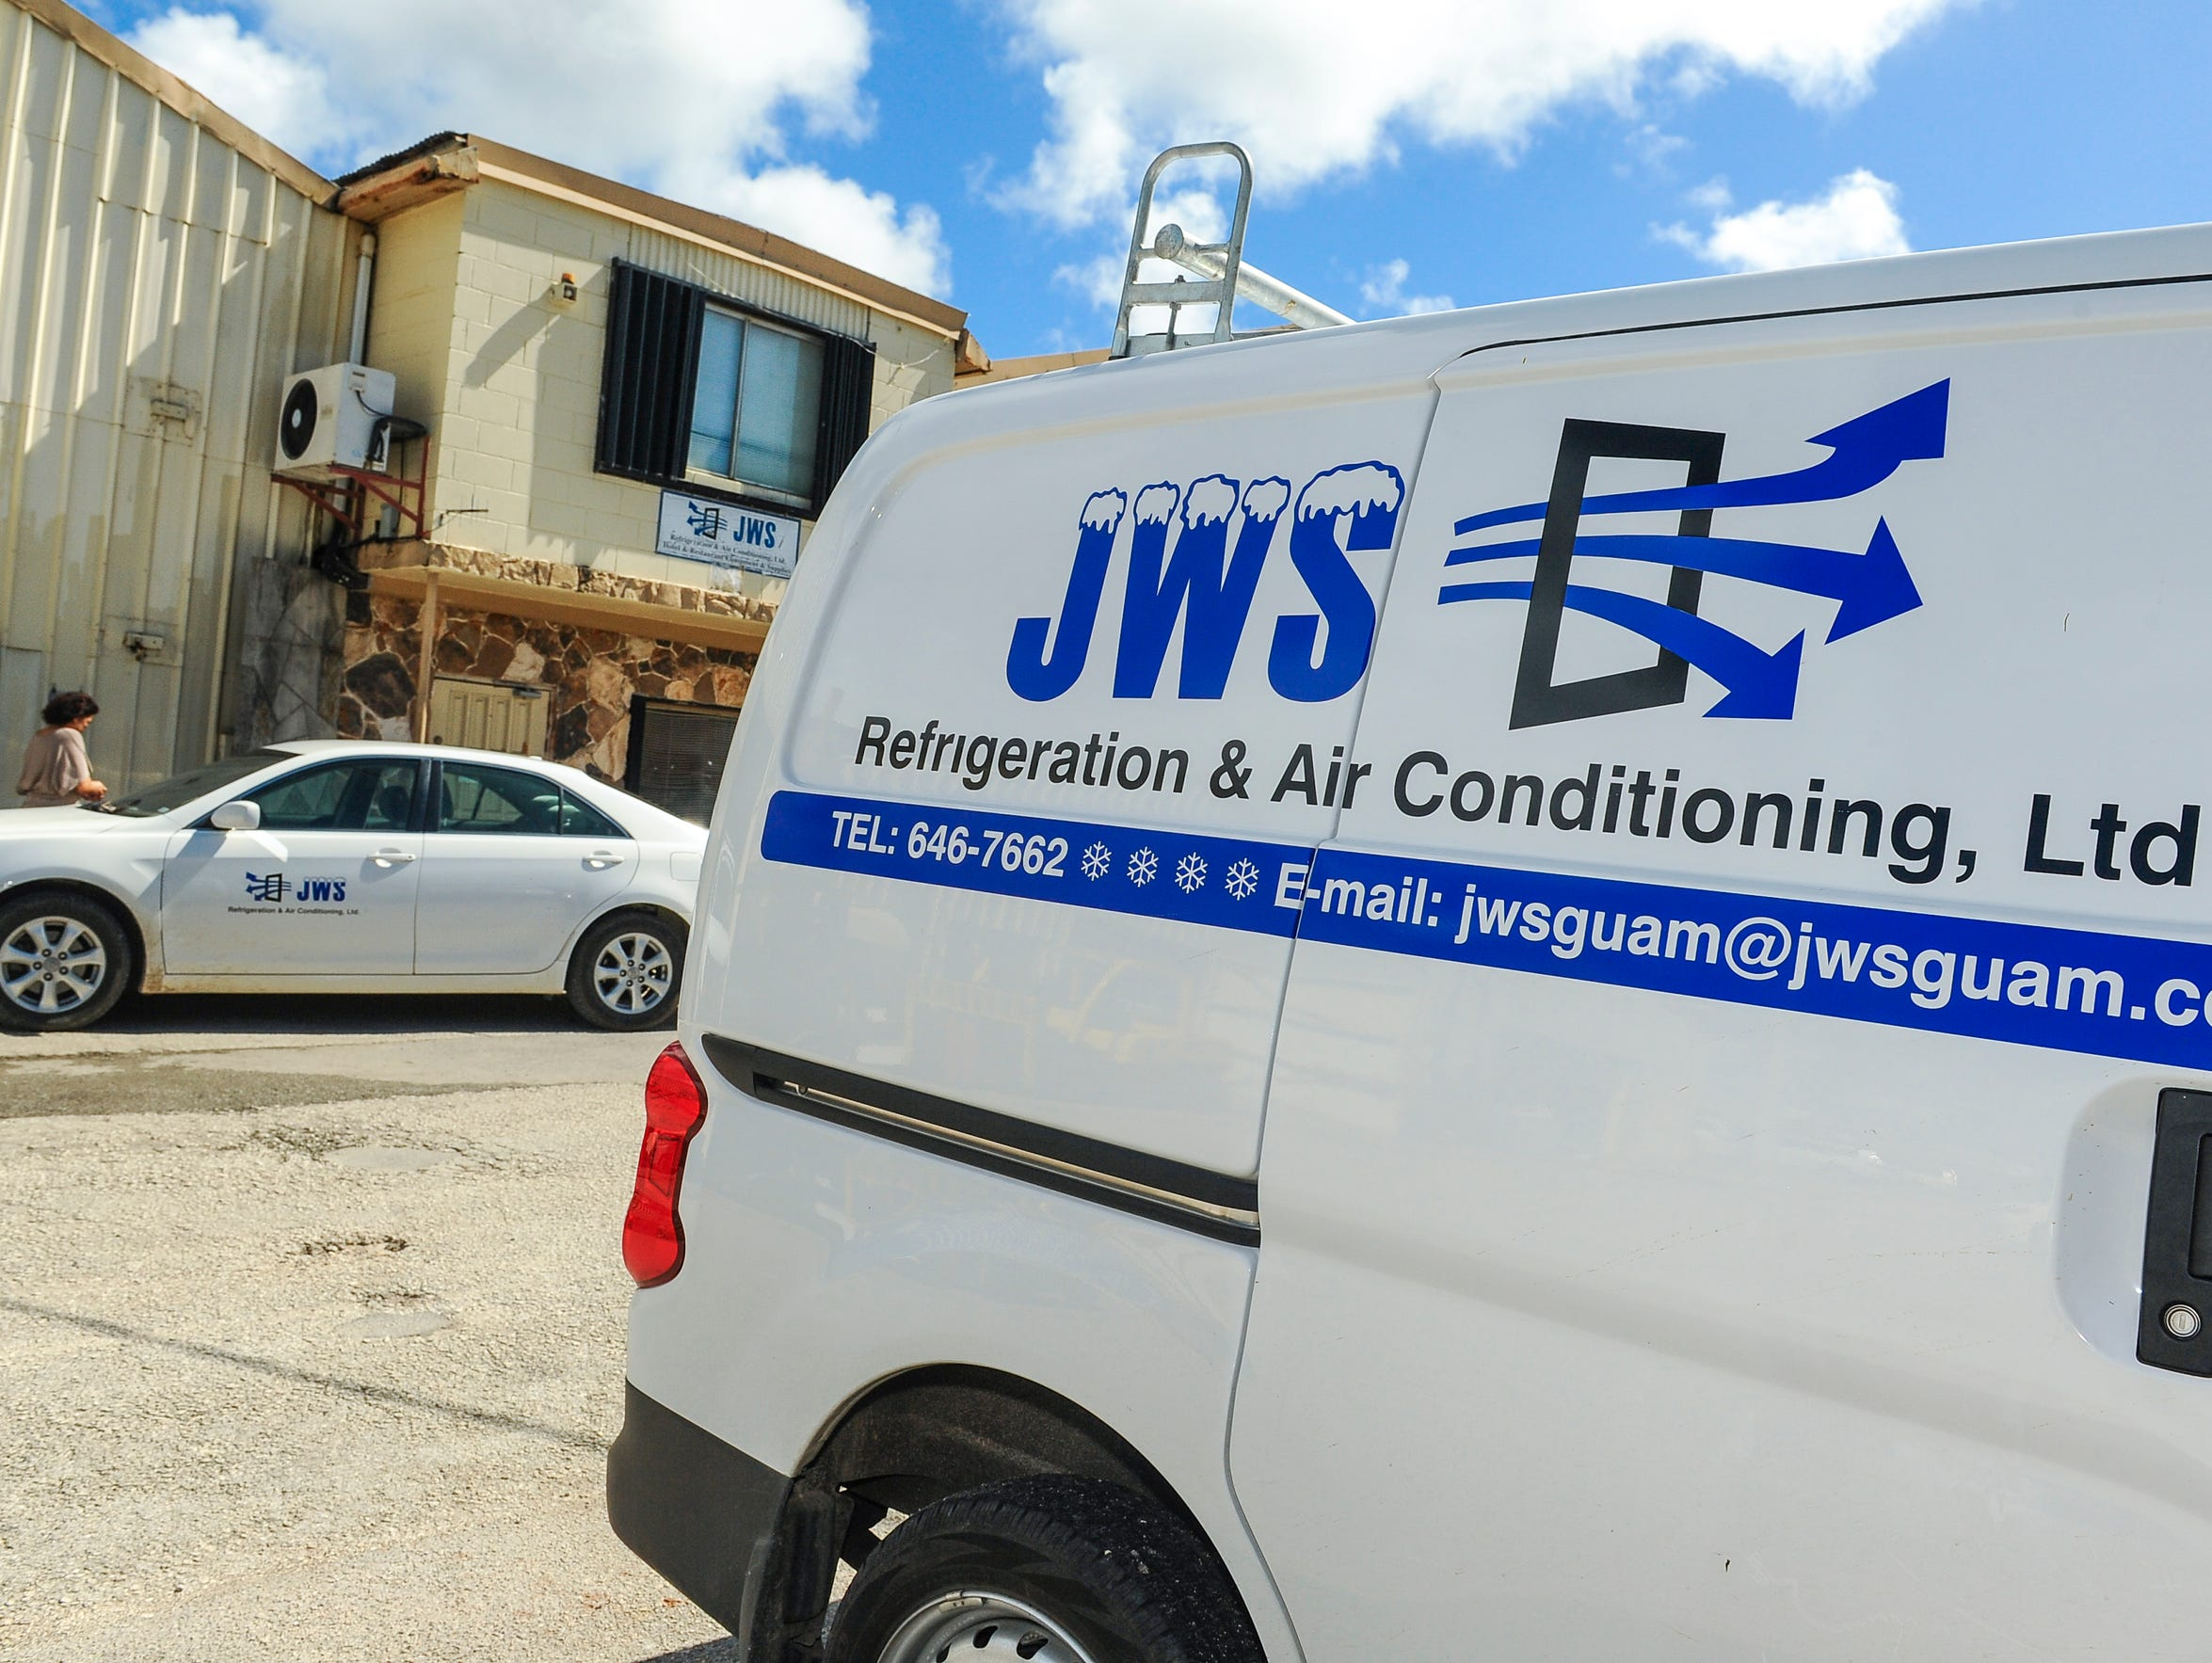 JWS Refrigeration & Air Conditioning, Ltd